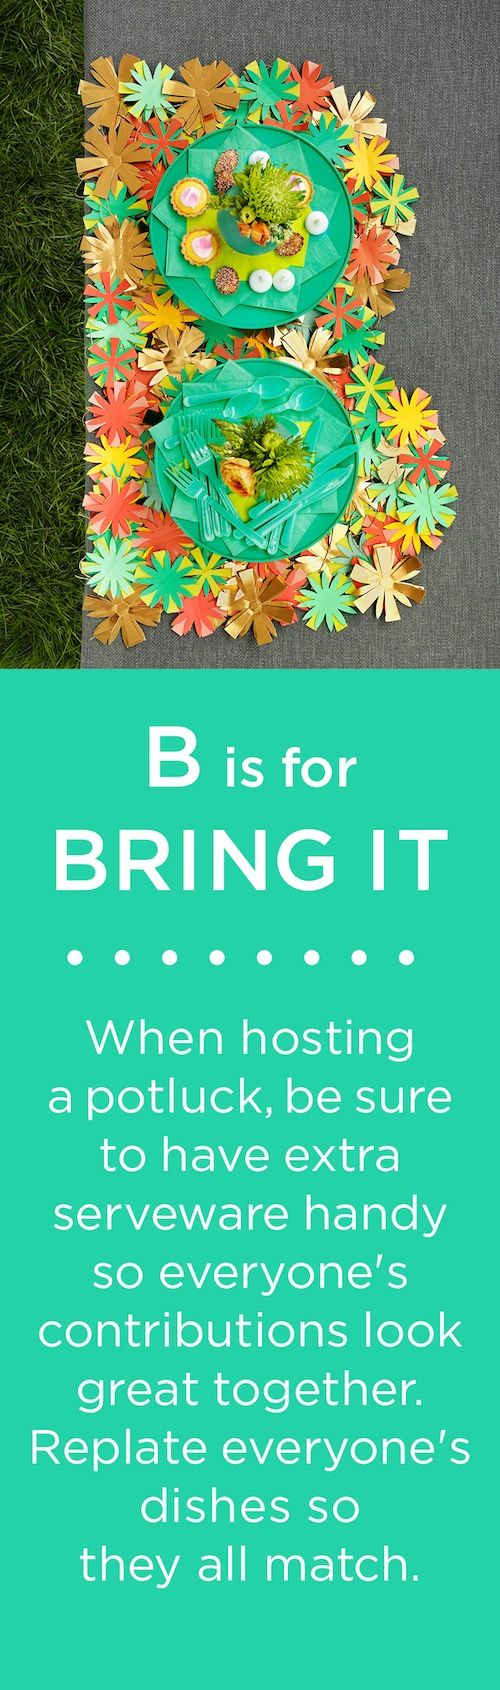 B is for BRING IT